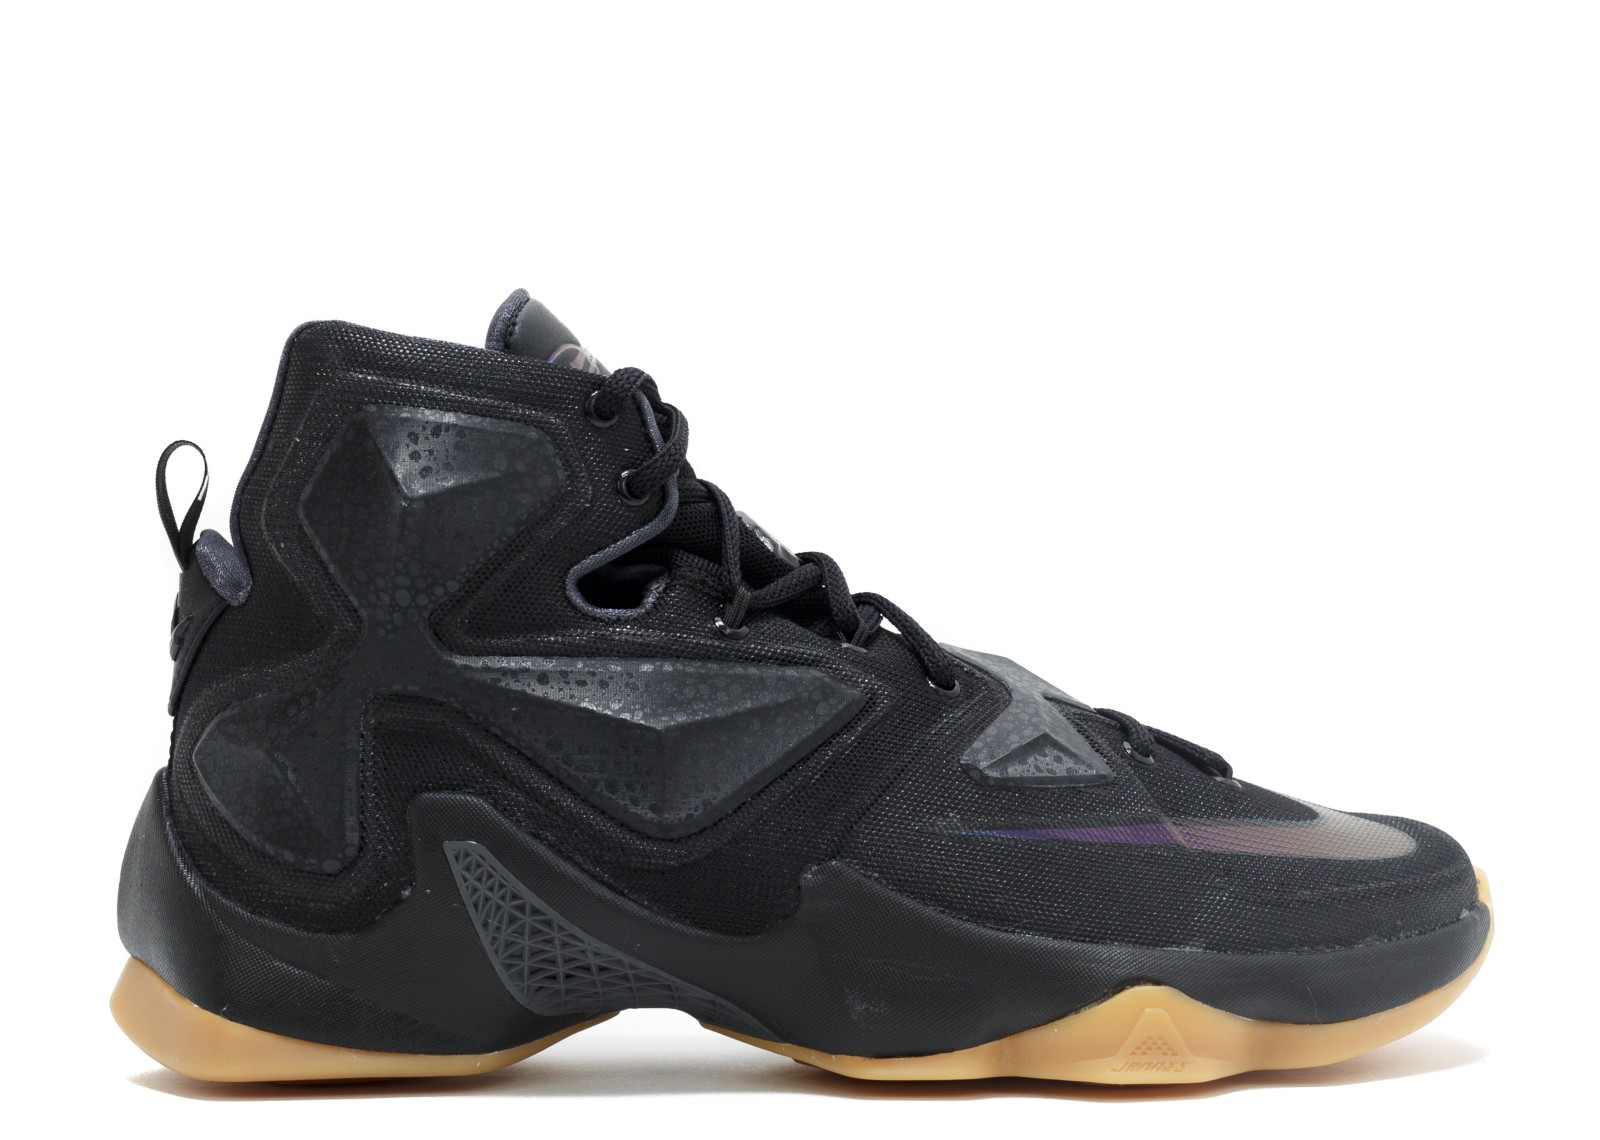 buy popular 21836 771d8 Lebron 13 Black Lion Black Anthracite 807219-001